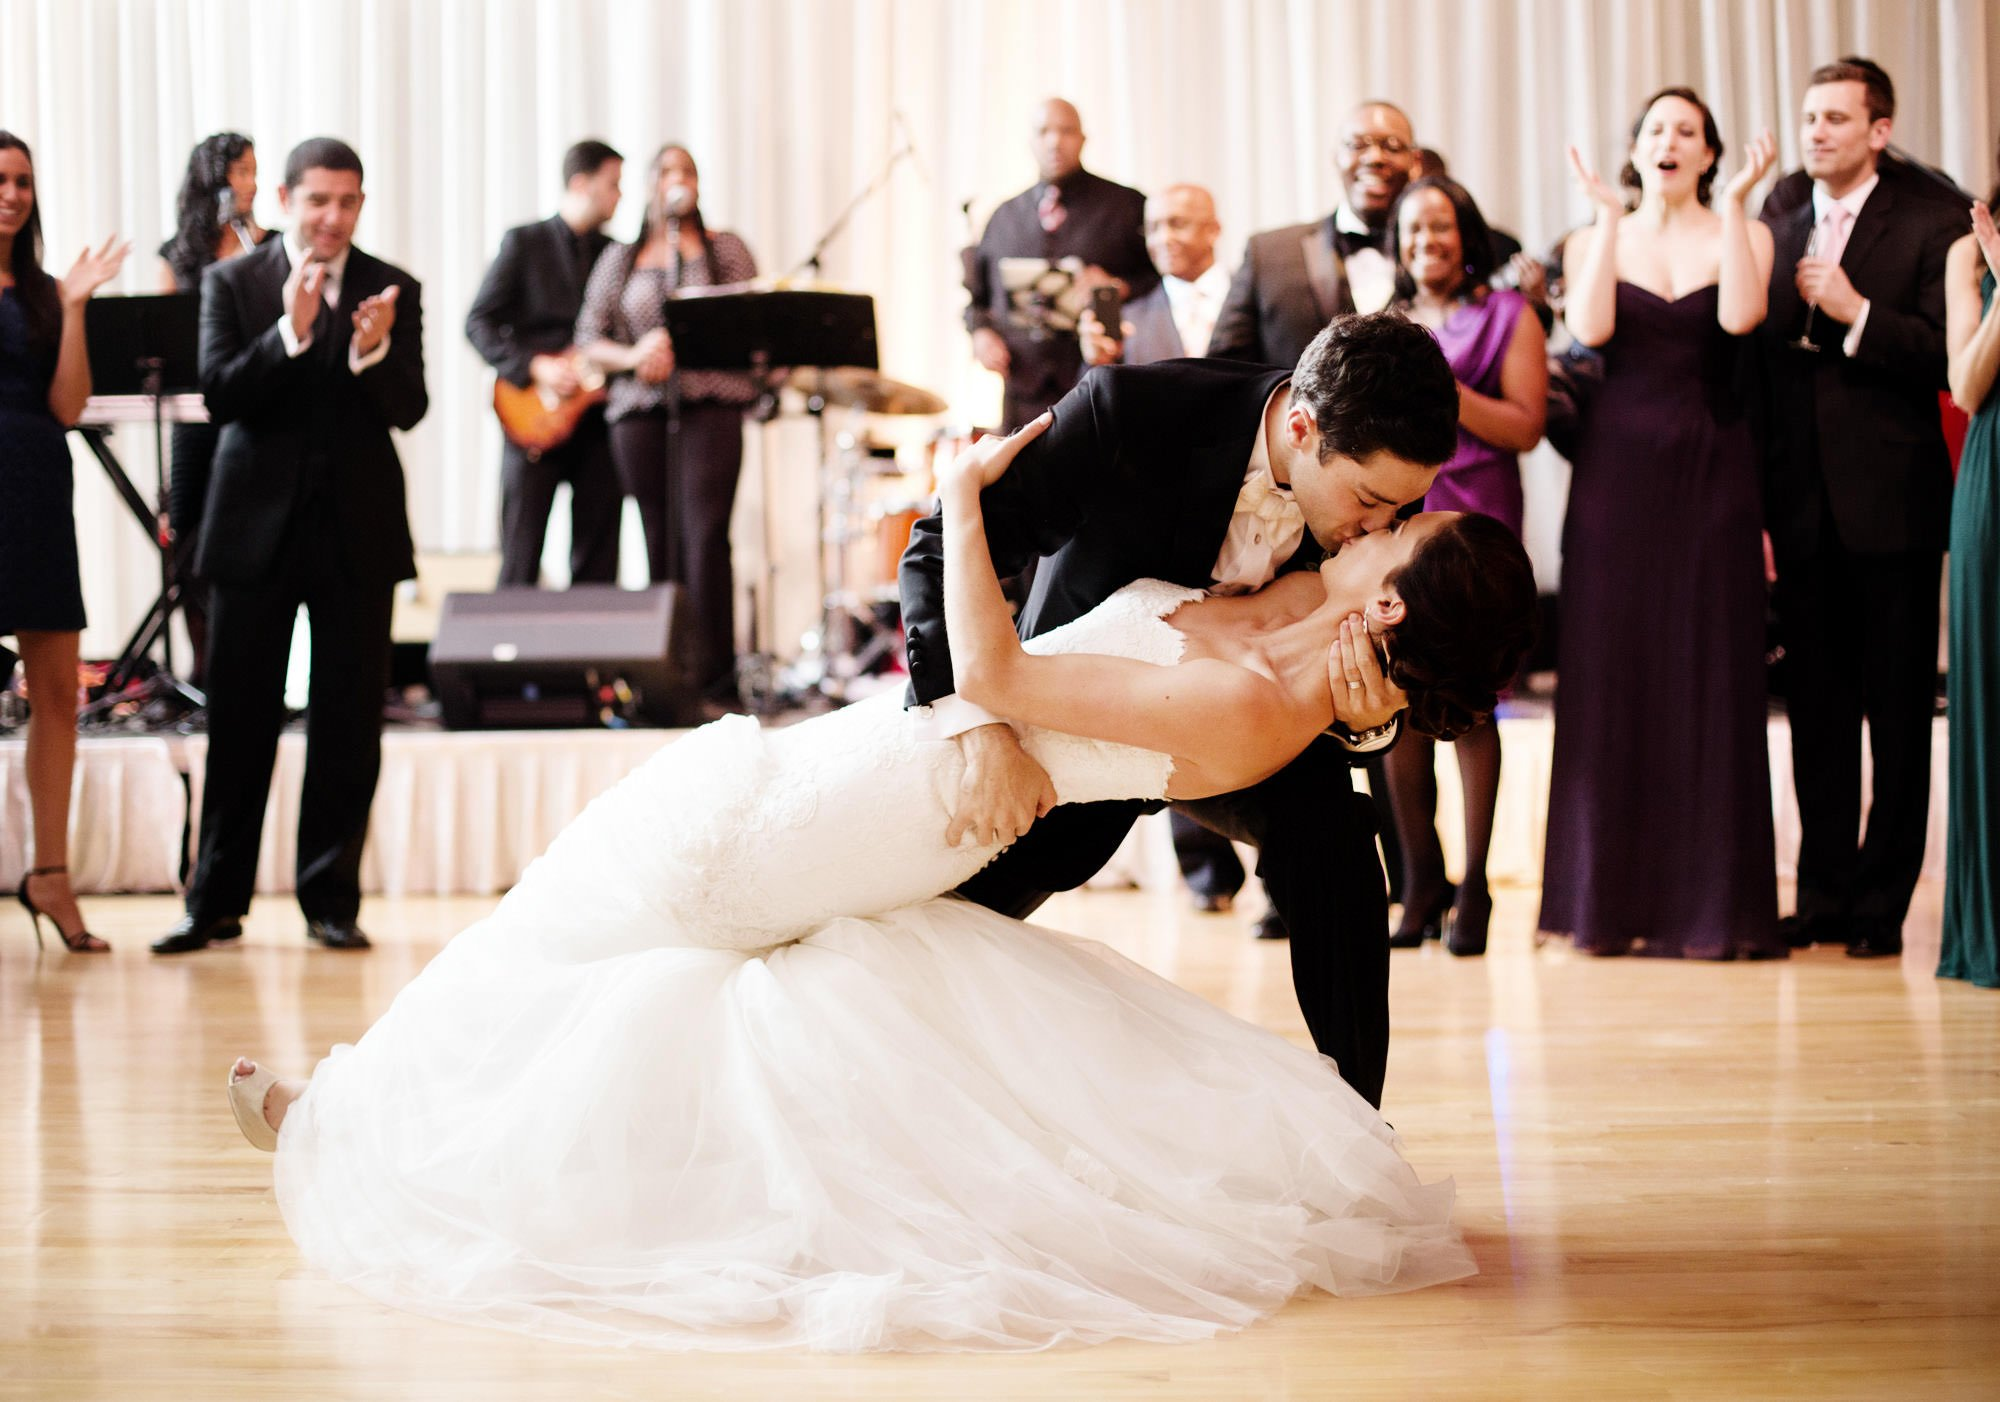 The groom dips his bride during the first dance of their Temple Rodef Shalom wedding.